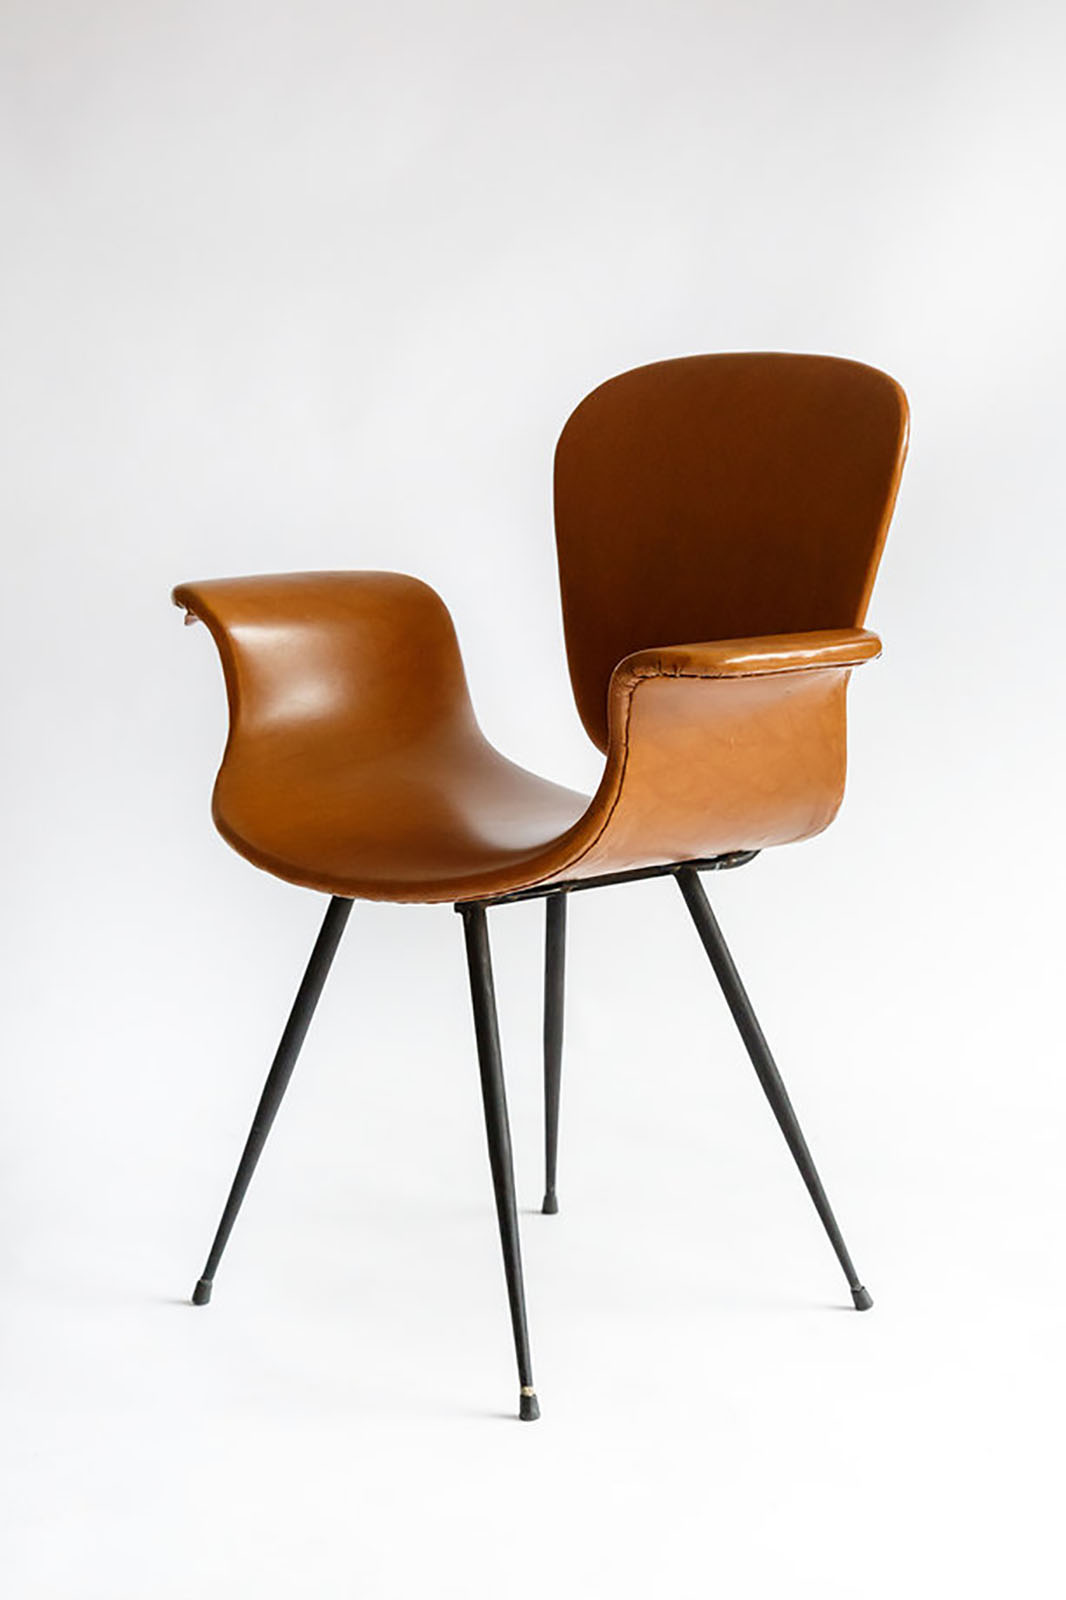 Armchair by Carlo Ratti for sale